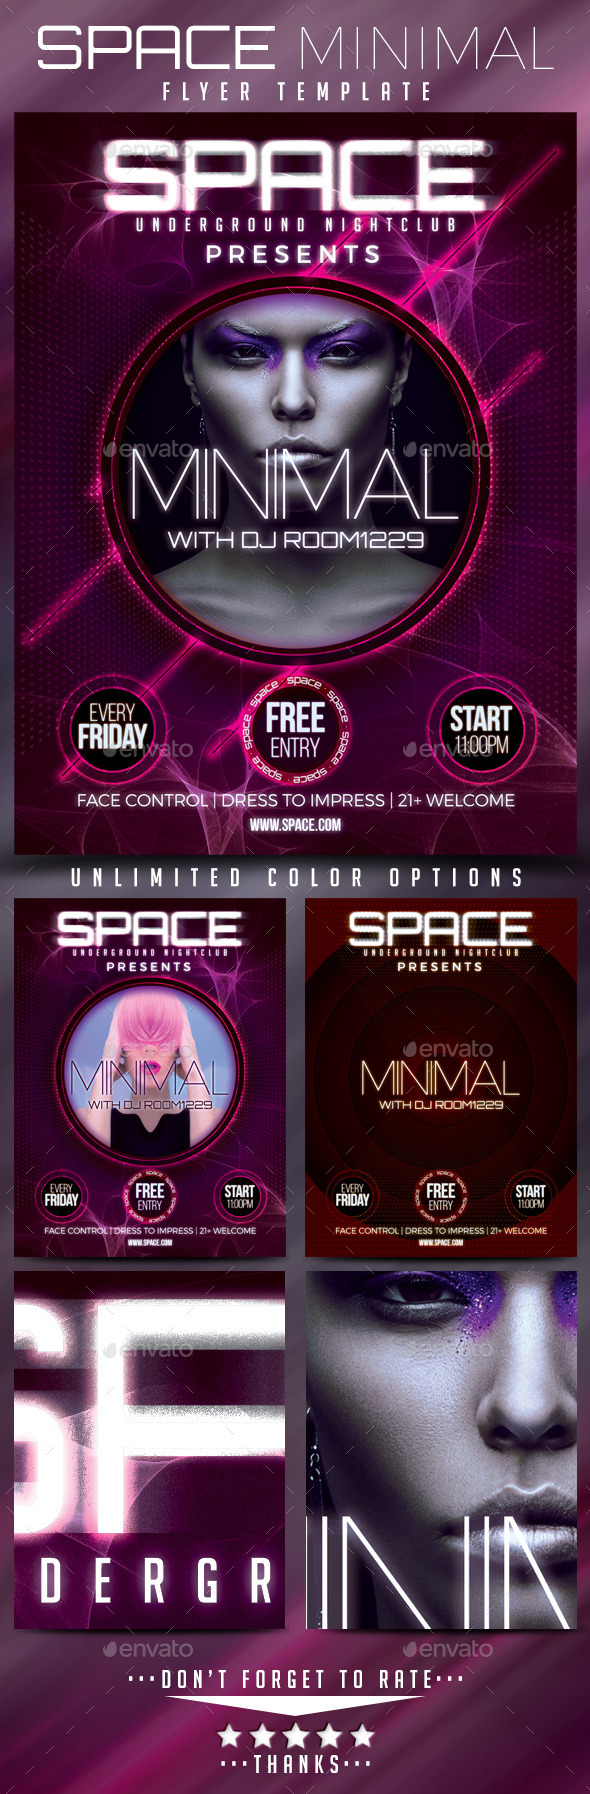 Space Minimal Flyer Template - Clubs & Parties Events